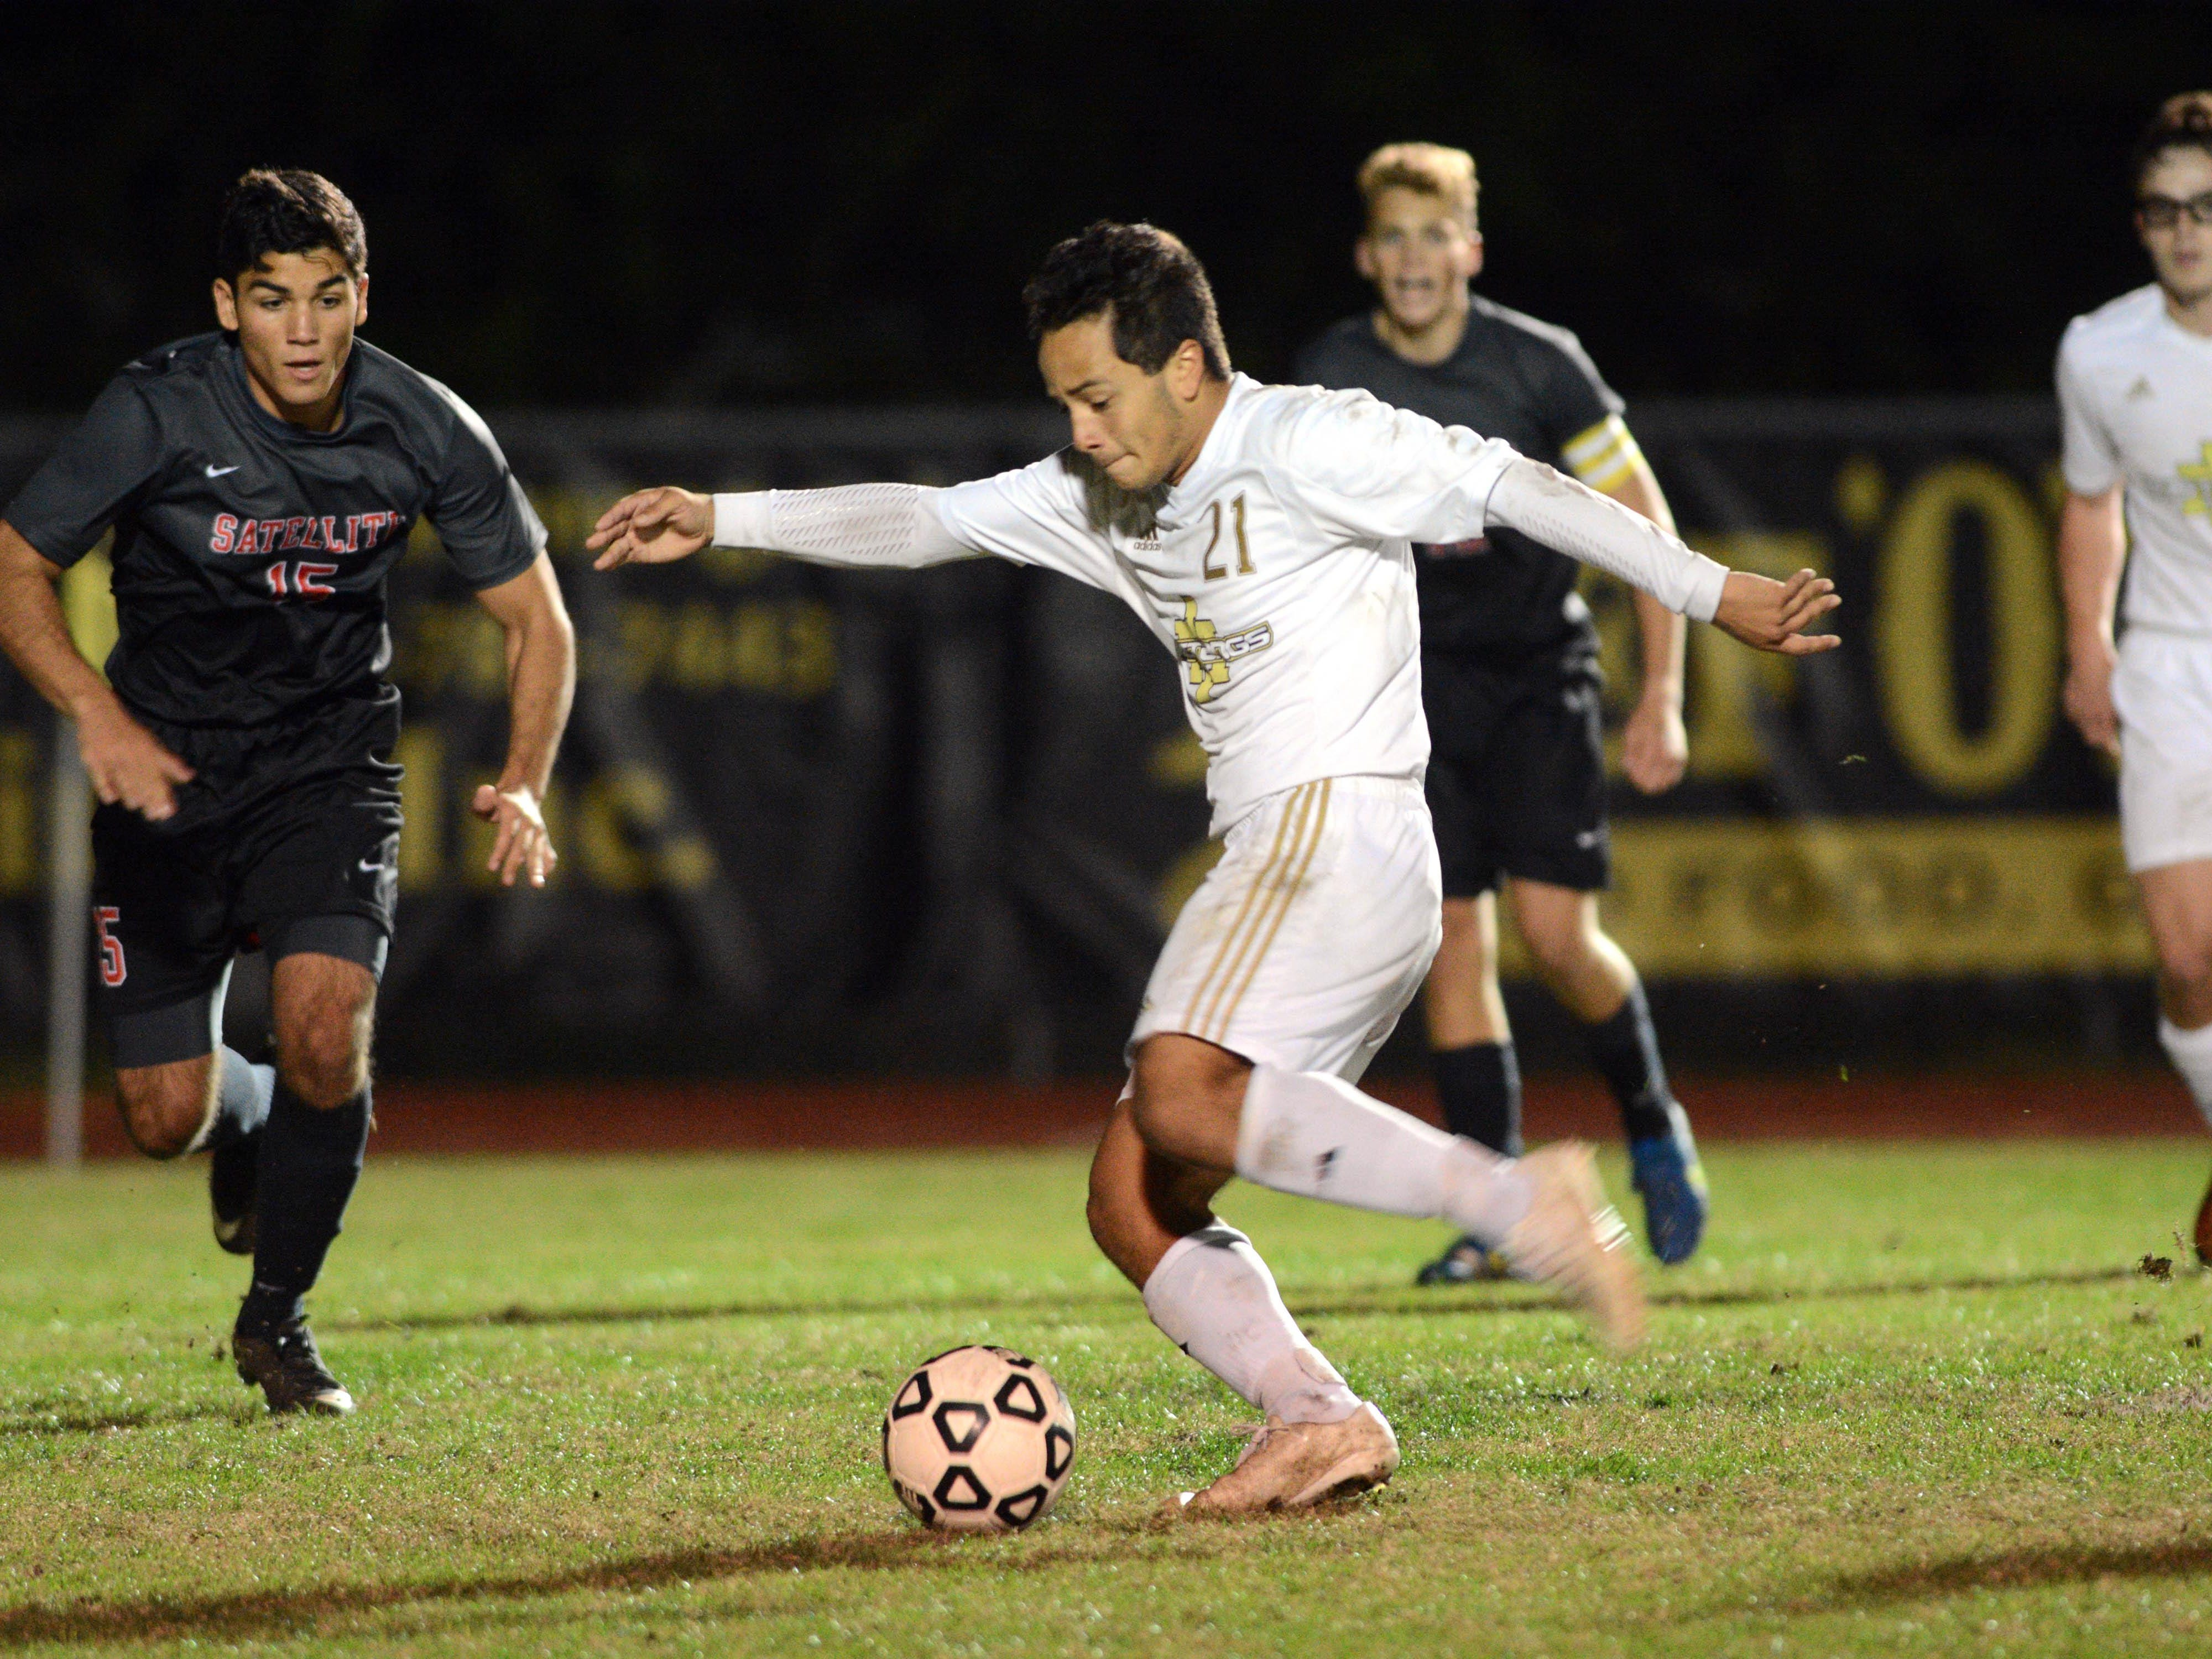 Merritt Island's Cameron Michaels taks a shot on goal during Friday's District 12 Class 3A championship against Satellite.